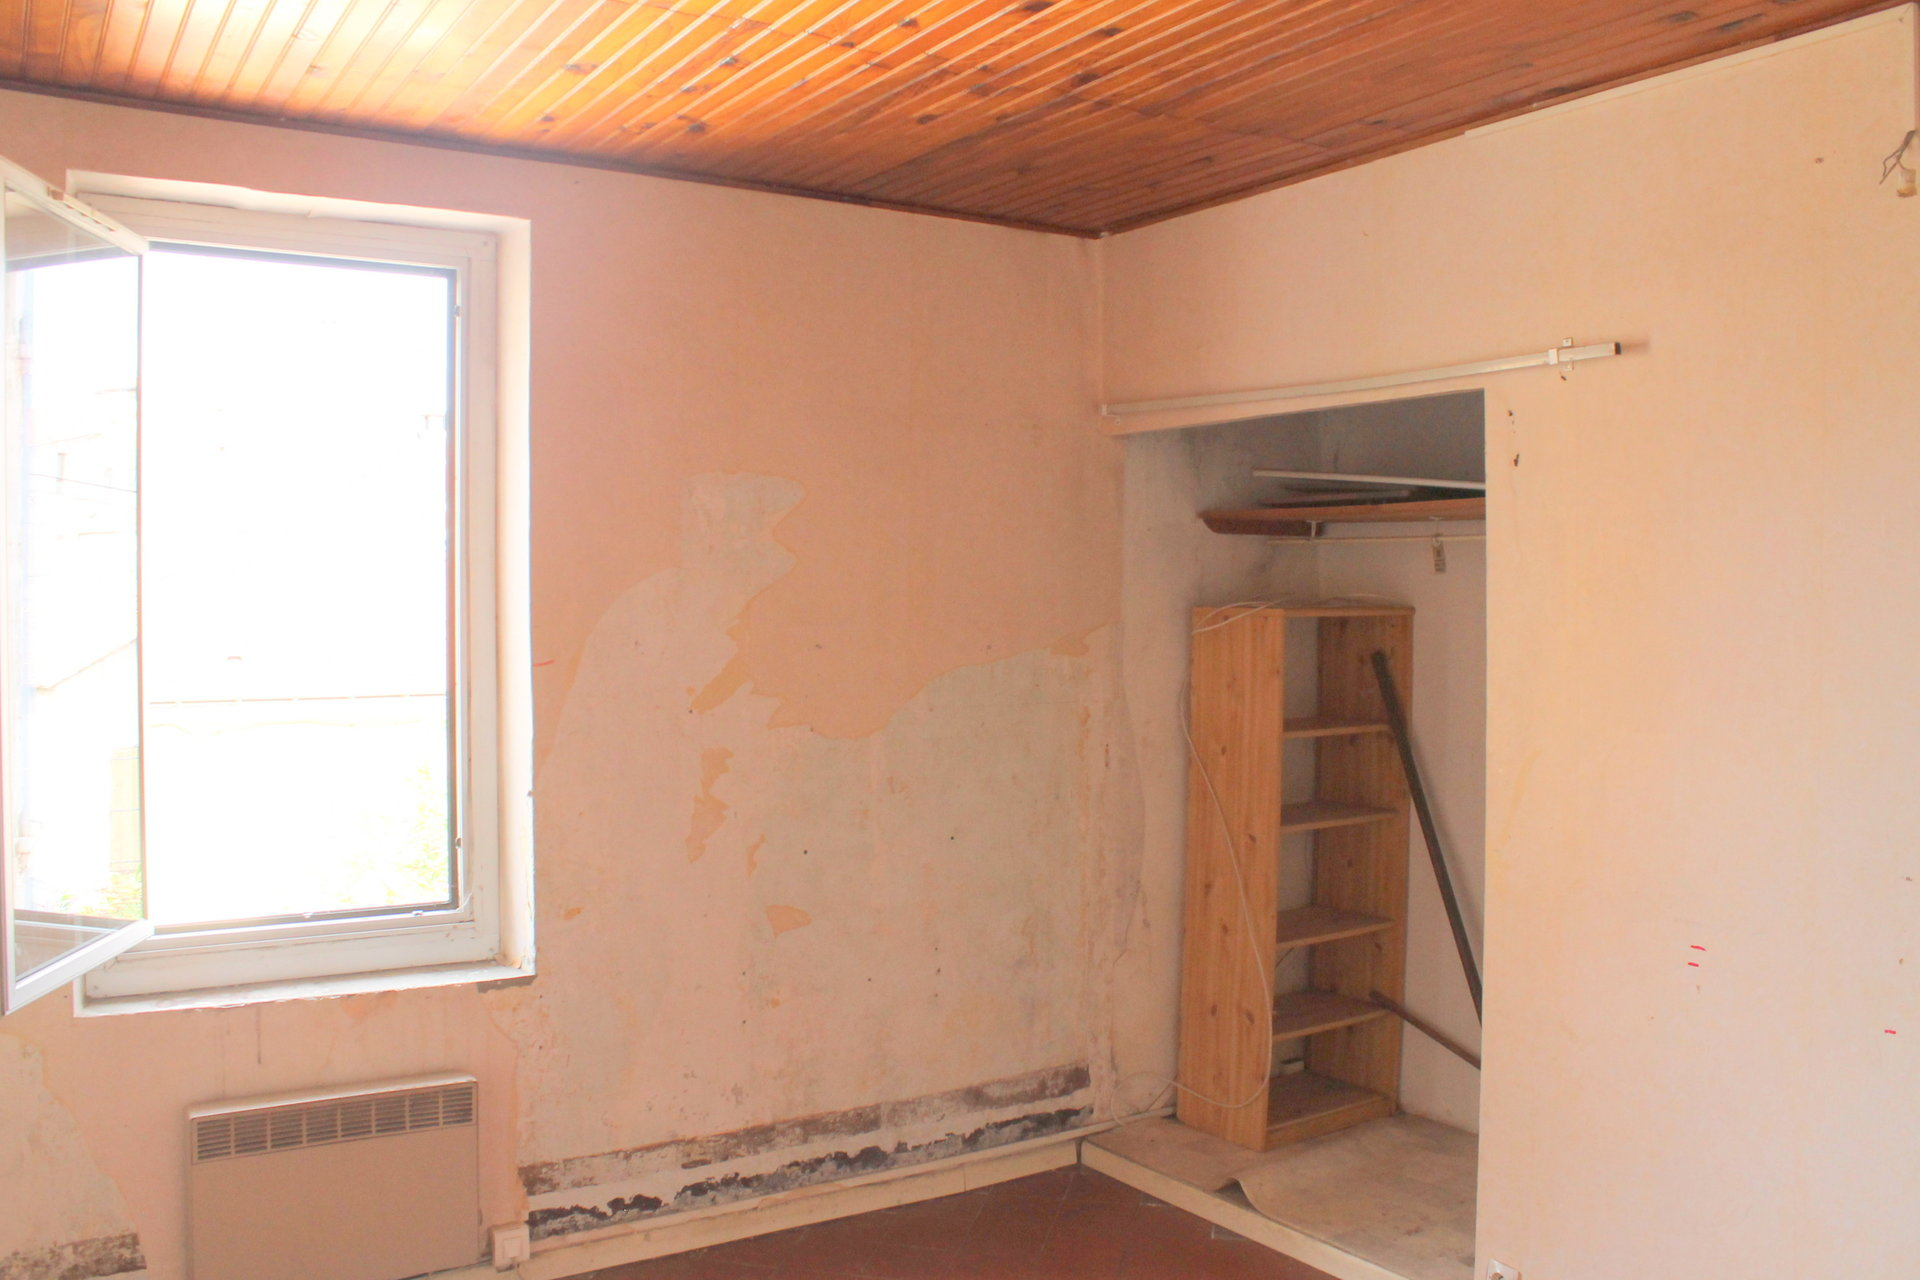 To renovate house 70m² two bedrooms cour 50m²